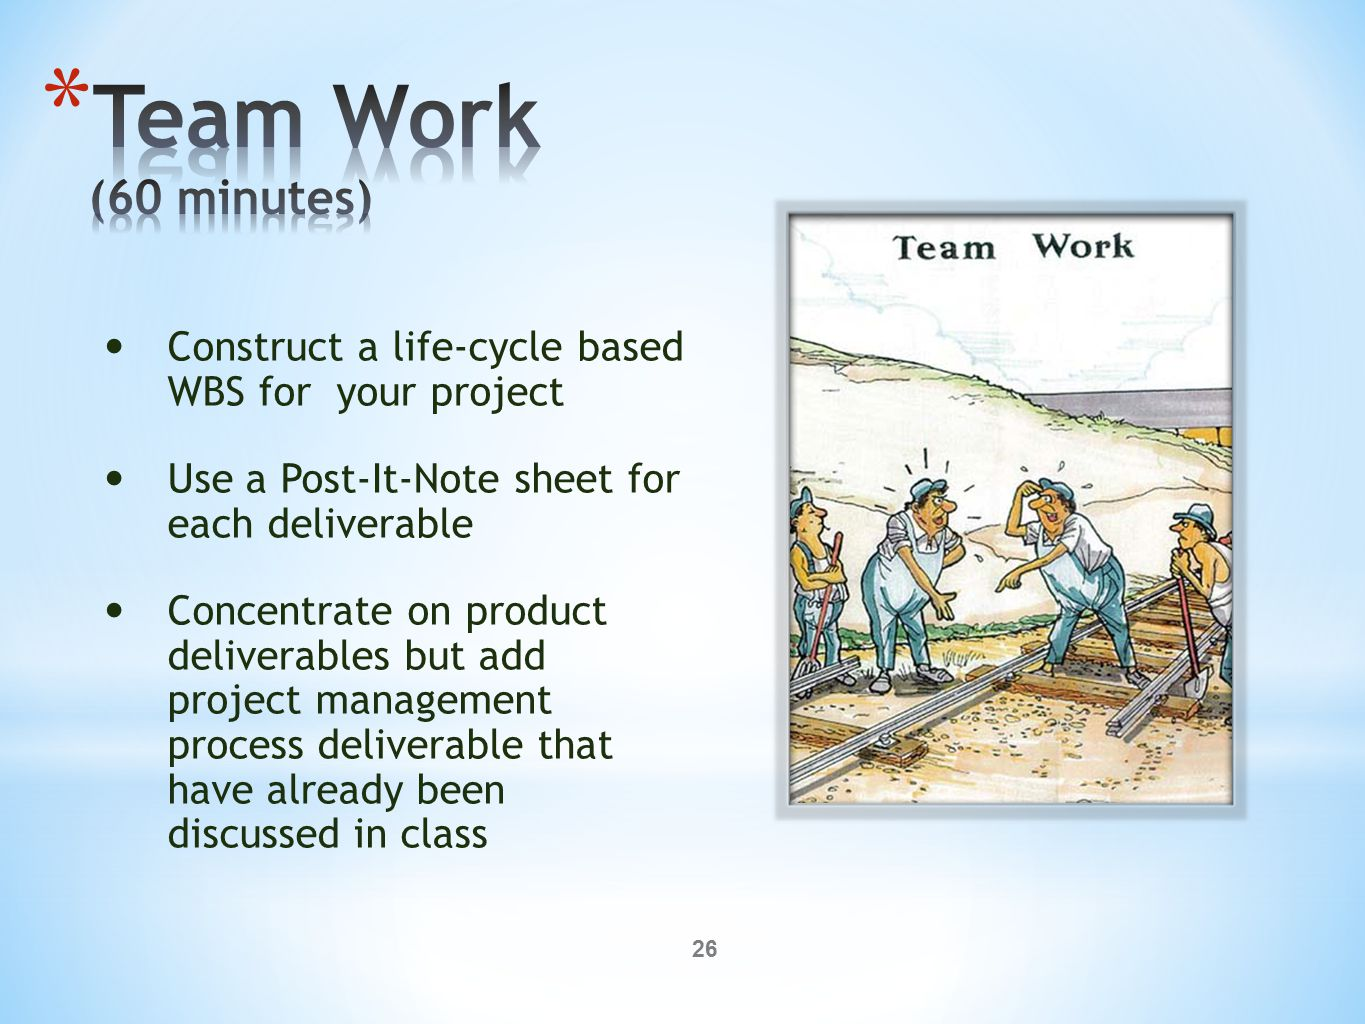 26 Construct a life-cycle based WBS for your project Use a Post-It-Note sheet for each deliverable Concentrate on product deliverables but add project